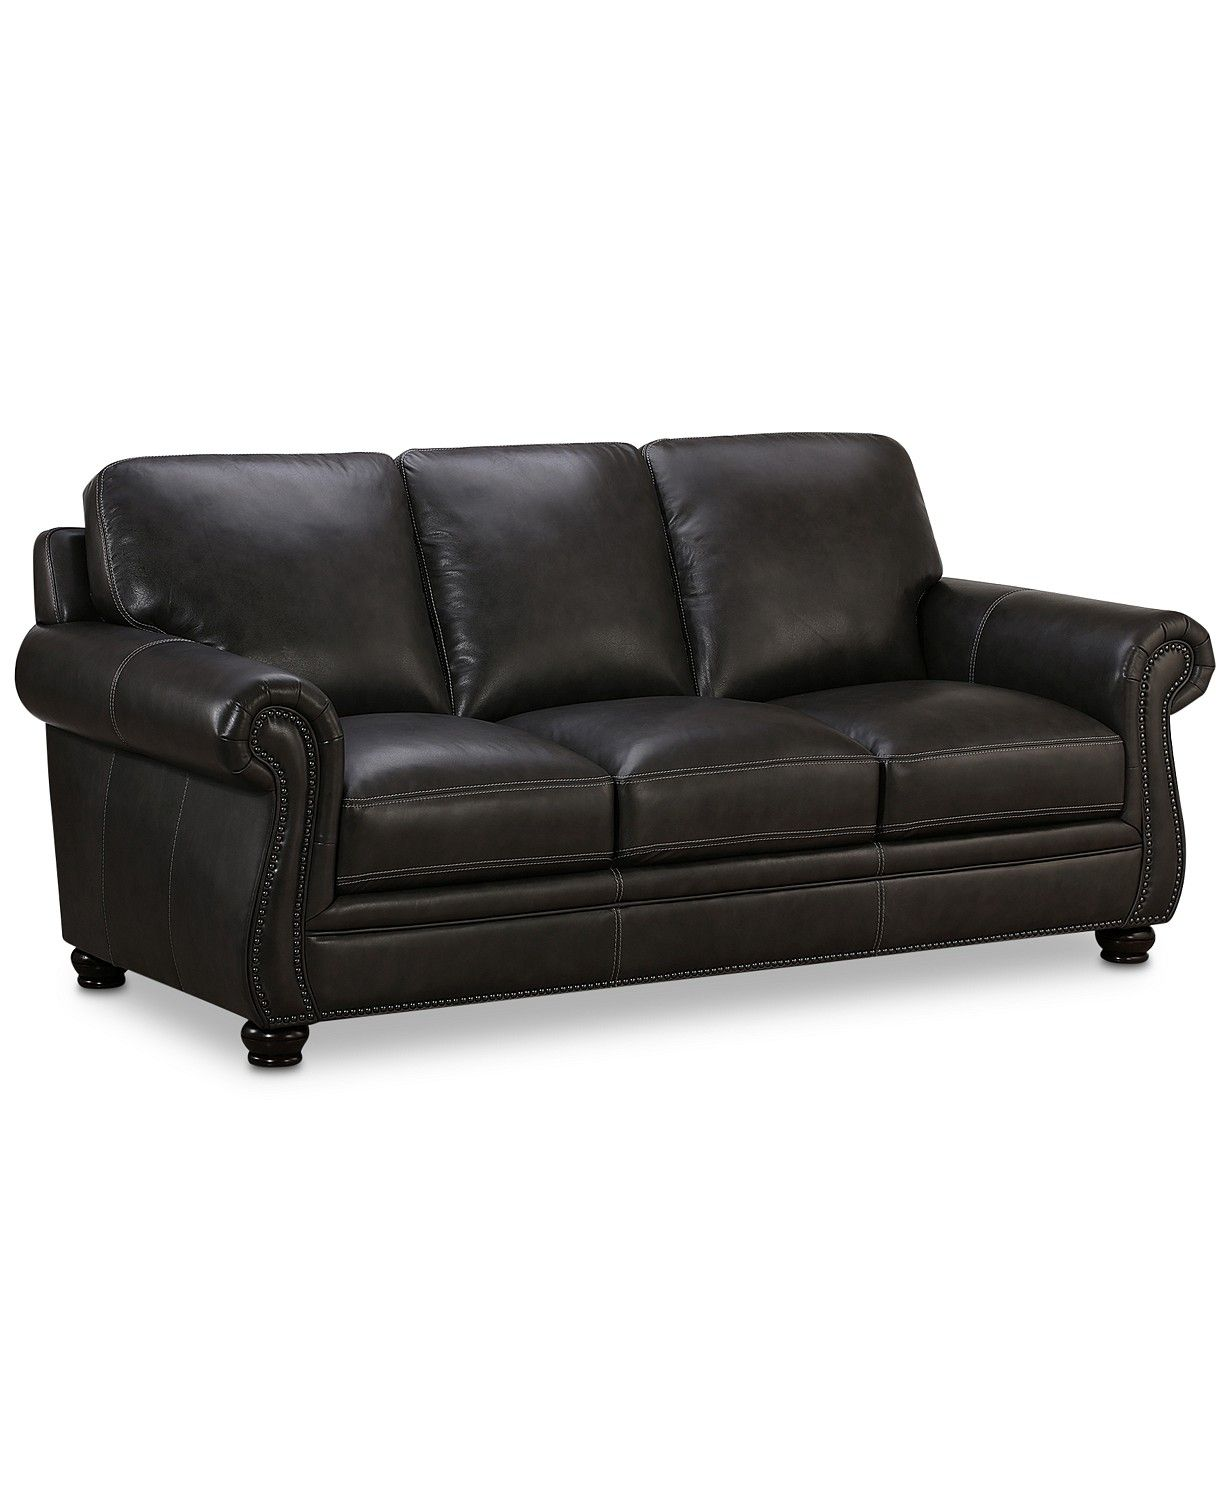 Smart Ecksofa Anna Roselake 87 Leather Sofa Created For Macy S New Living Room